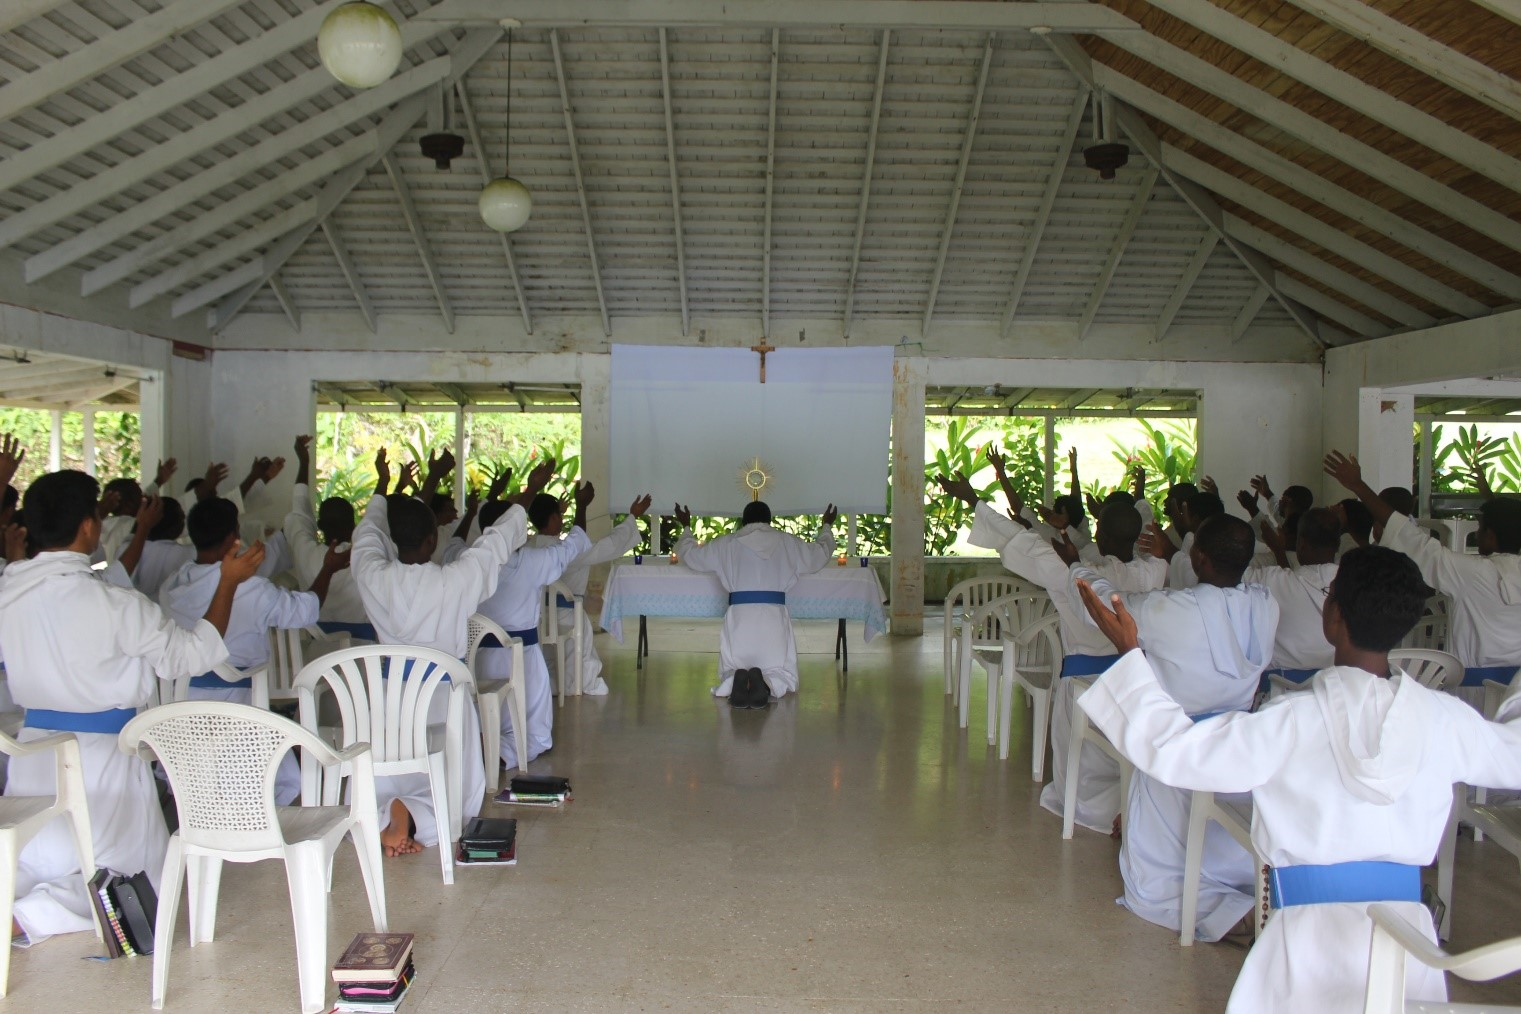 Missionaries of the Poor (MOP) brothers in Adoration in Haiti